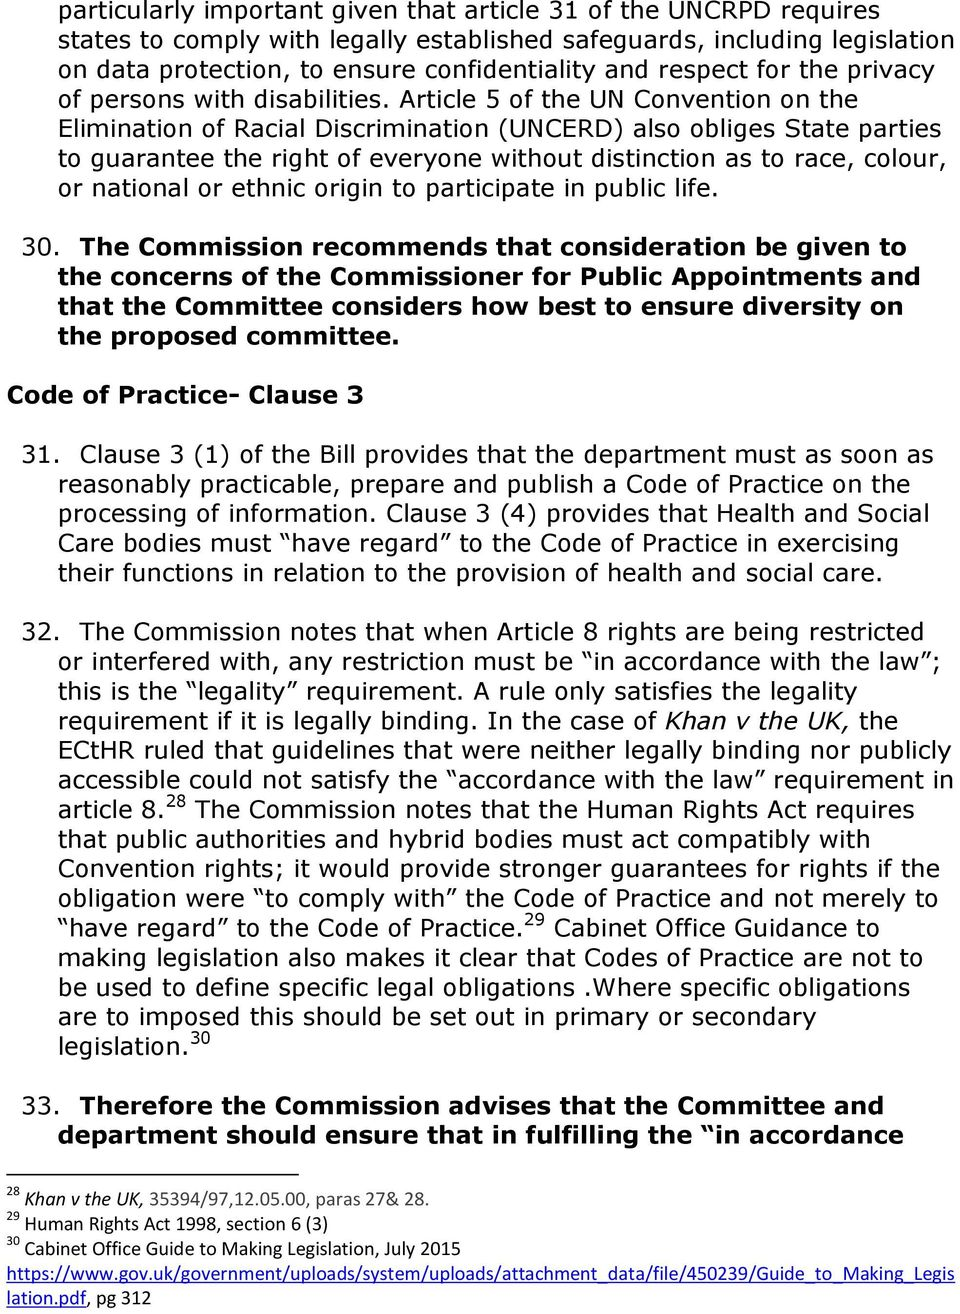 Article 5 of the UN Convention on the Elimination of Racial Discrimination (UNCERD) also obliges State parties to guarantee the right of everyone without distinction as to race, colour, or national